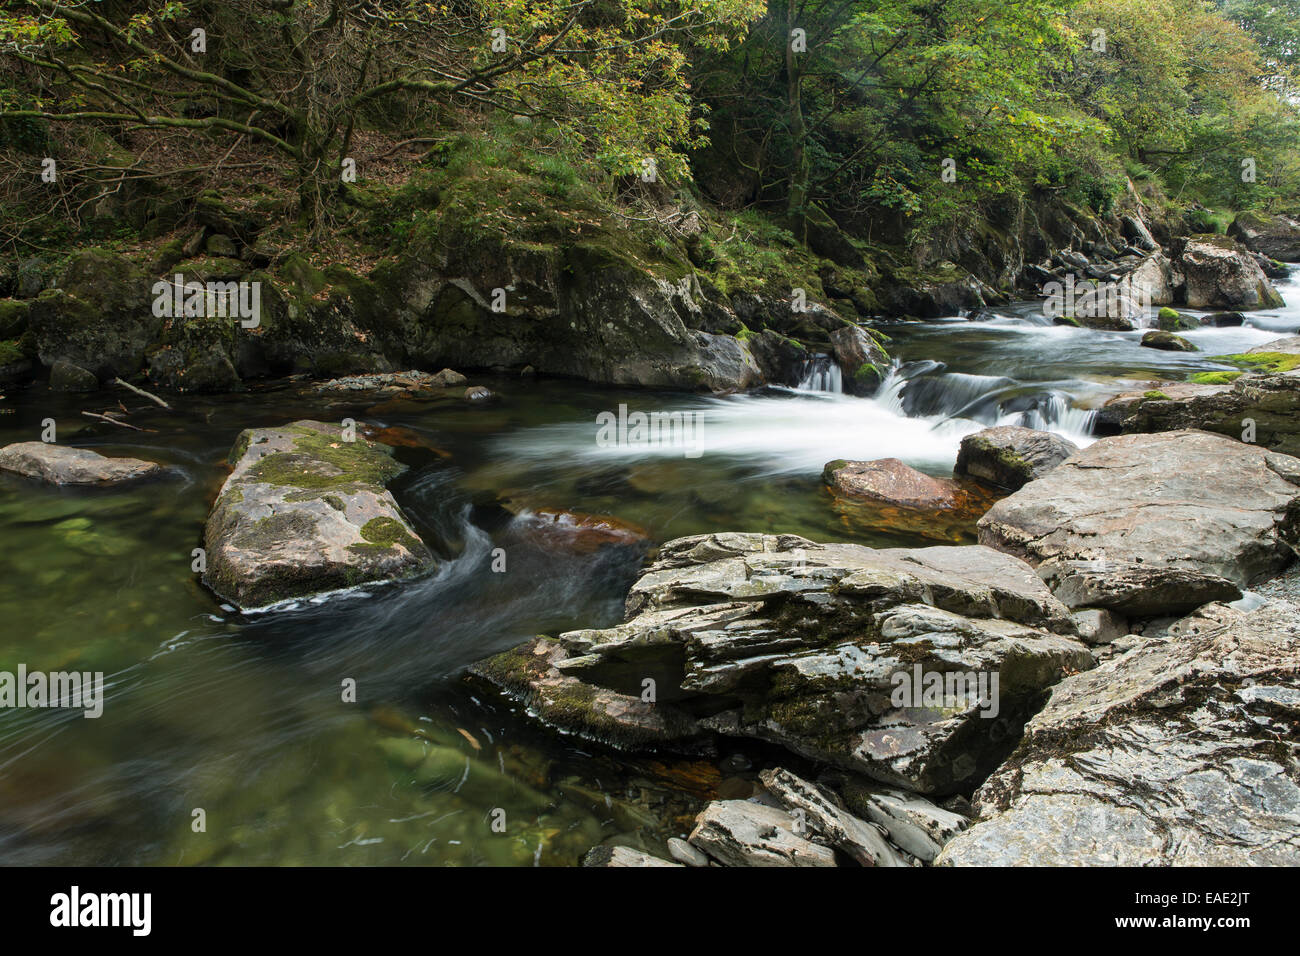 The river Glaslyn flows between the trees and rocks of the Aberglaslyn Pass in Snowdonia, Gwynedd, North Wales Stock Photo